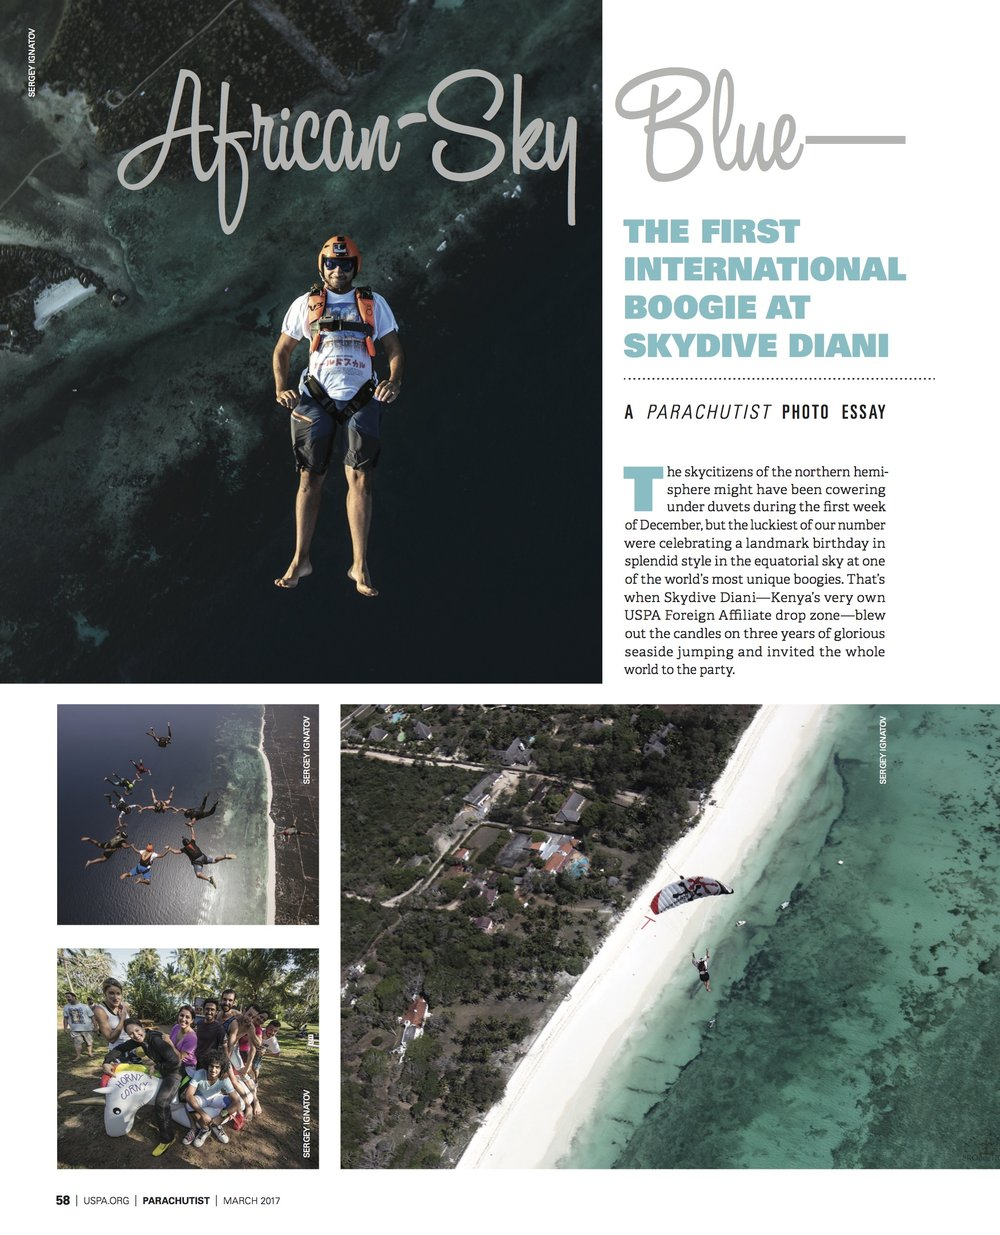 African Sky Blue: The Skydive Diani International Boogie